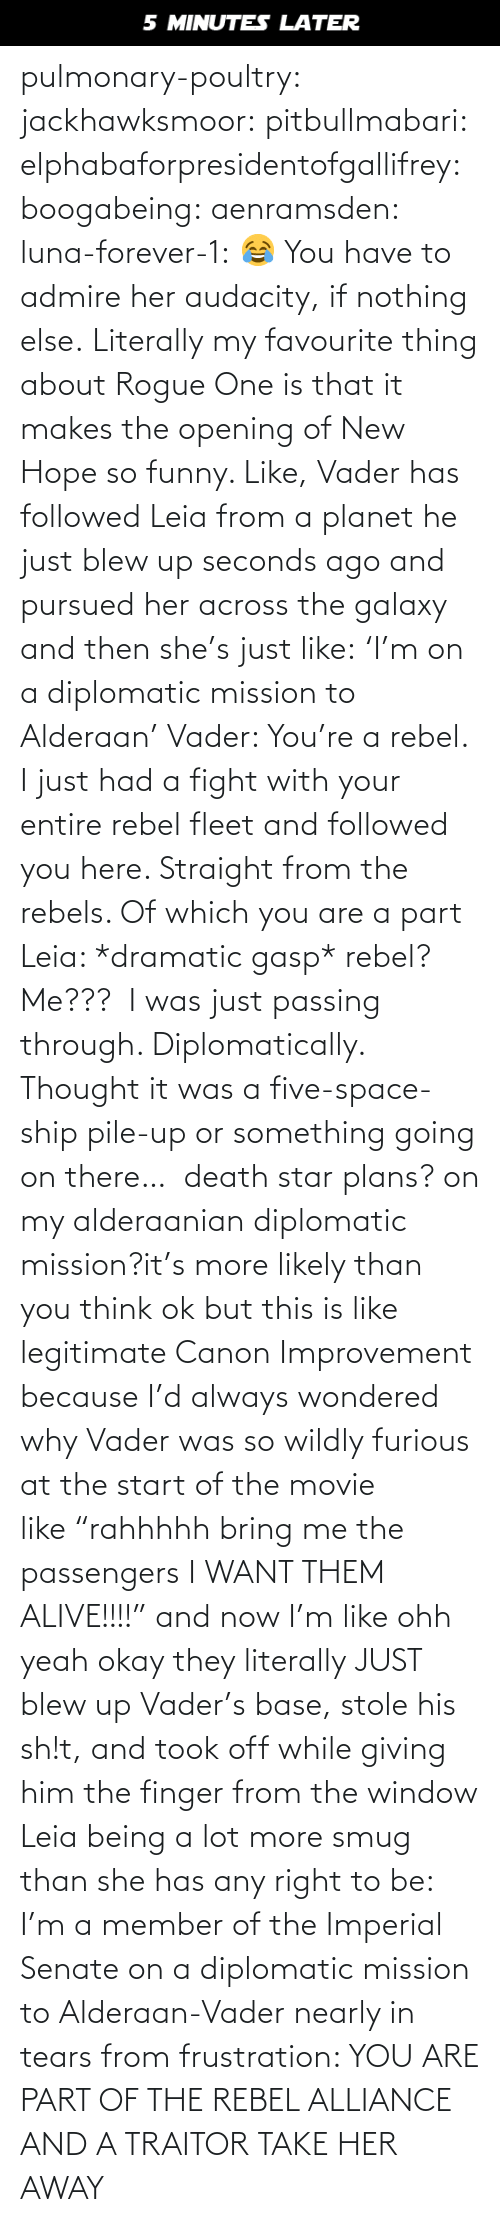 """Now I: 5 MINUTES LATER pulmonary-poultry:  jackhawksmoor:  pitbullmabari:  elphabaforpresidentofgallifrey:  boogabeing:  aenramsden:  luna-forever-1: 😂 You have to admire her audacity, if nothing else.  Literally my favourite thing about Rogue One is that it makes the opening of New Hope so funny. Like, Vader has followed Leia from a planet he just blew up seconds ago and pursued her across the galaxy and then she's just like:'I'm on a diplomatic mission to Alderaan' Vader: You're a rebel. I just had a fight with your entire rebel fleet and followed you here. Straight from the rebels. Of which you are a part Leia: *dramatic gasp* rebel? Me??? I was just passing through. Diplomatically. Thought it was a five-space-ship pile-up or something going on there…  death star plans? on my alderaanian diplomatic mission?it's more likely than you think   ok but this is like legitimate Canon Improvement because I'd always wondered why Vader was so wildly furious at the start of the movie like""""rahhhhh bring me the passengers I WANT THEM ALIVE!!!!"""" and now I'm like ohh yeah okay they literally JUST blew up Vader's base, stole his sh!t, and took off while giving him the finger from the window    Leia being a lot more smug than she has any right to be: I'm a member of the Imperial Senate on a diplomatic mission to Alderaan-Vader nearly in tears from frustration: YOU ARE PART OF THE REBEL ALLIANCE AND A TRAITOR TAKE HER AWAY"""